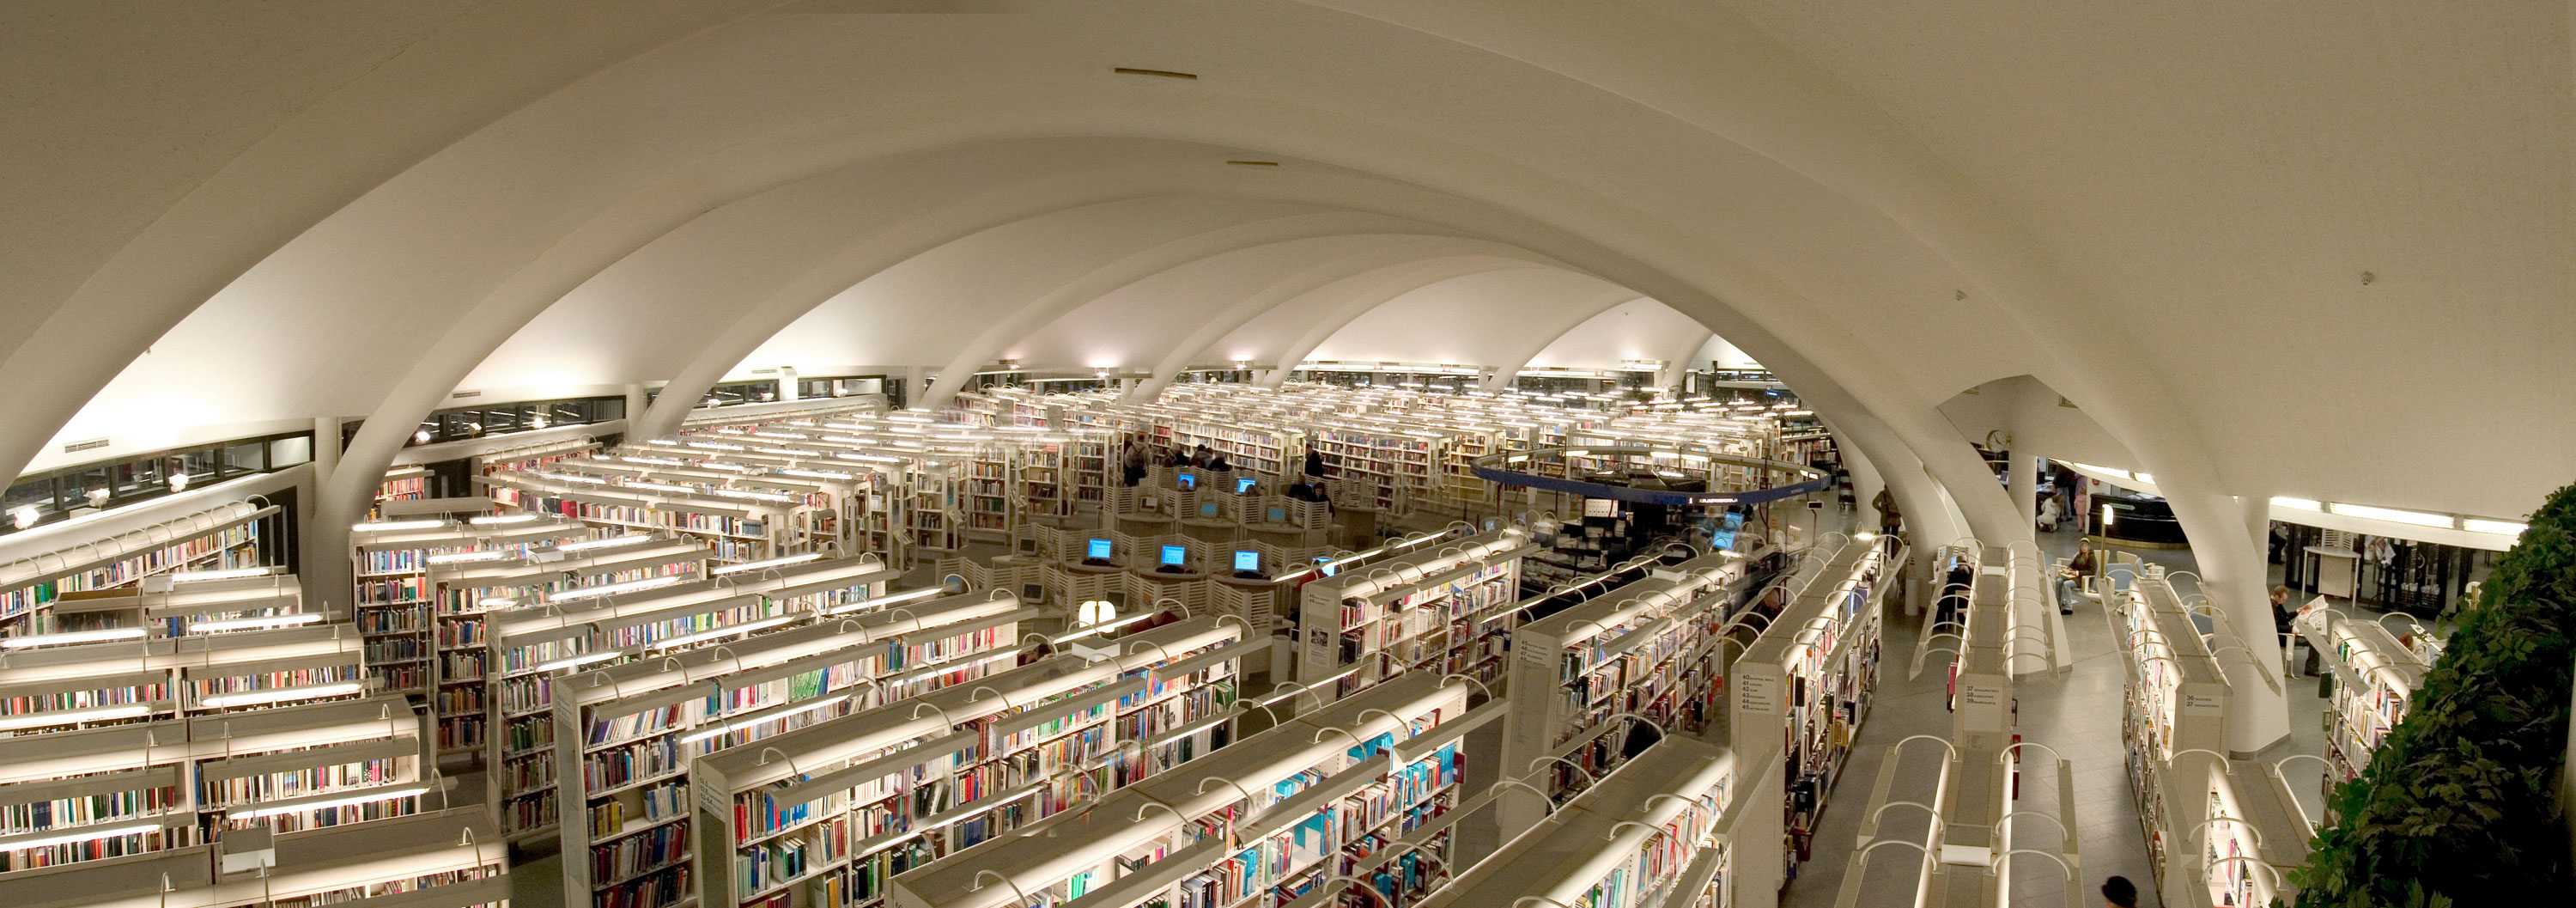 Tampere City Library Metso Libraries Fi